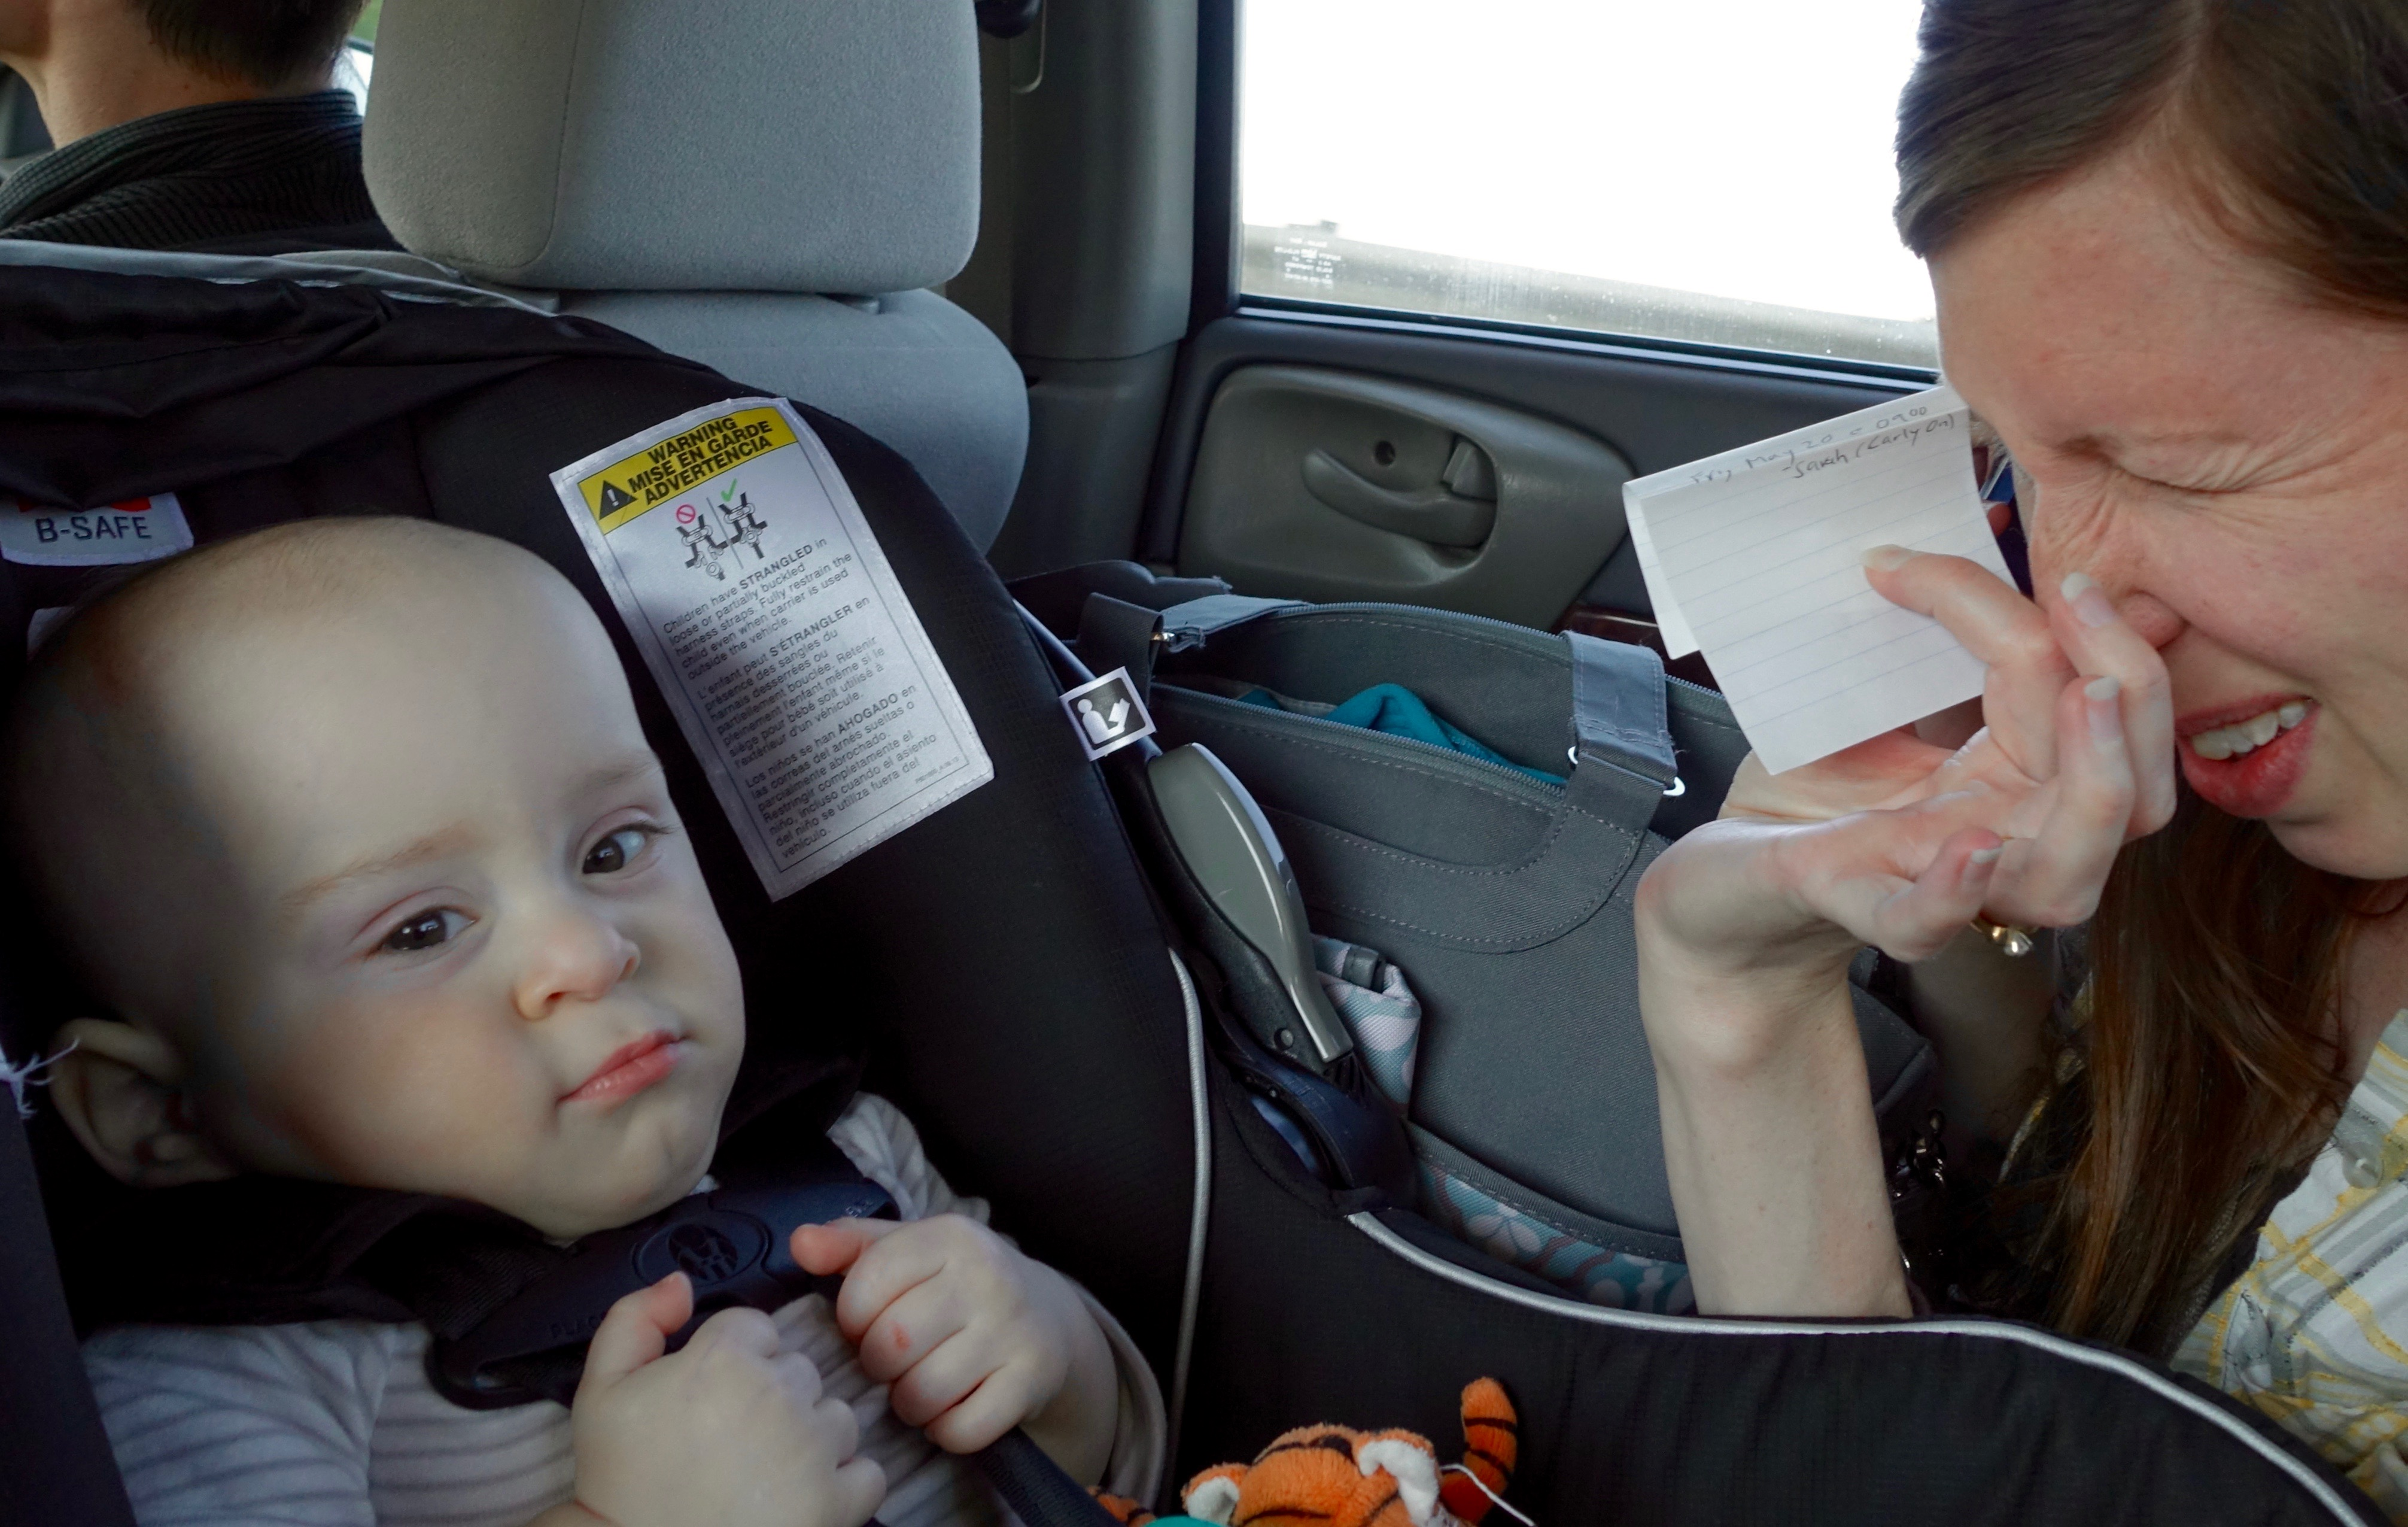 Baby not happy in car seat